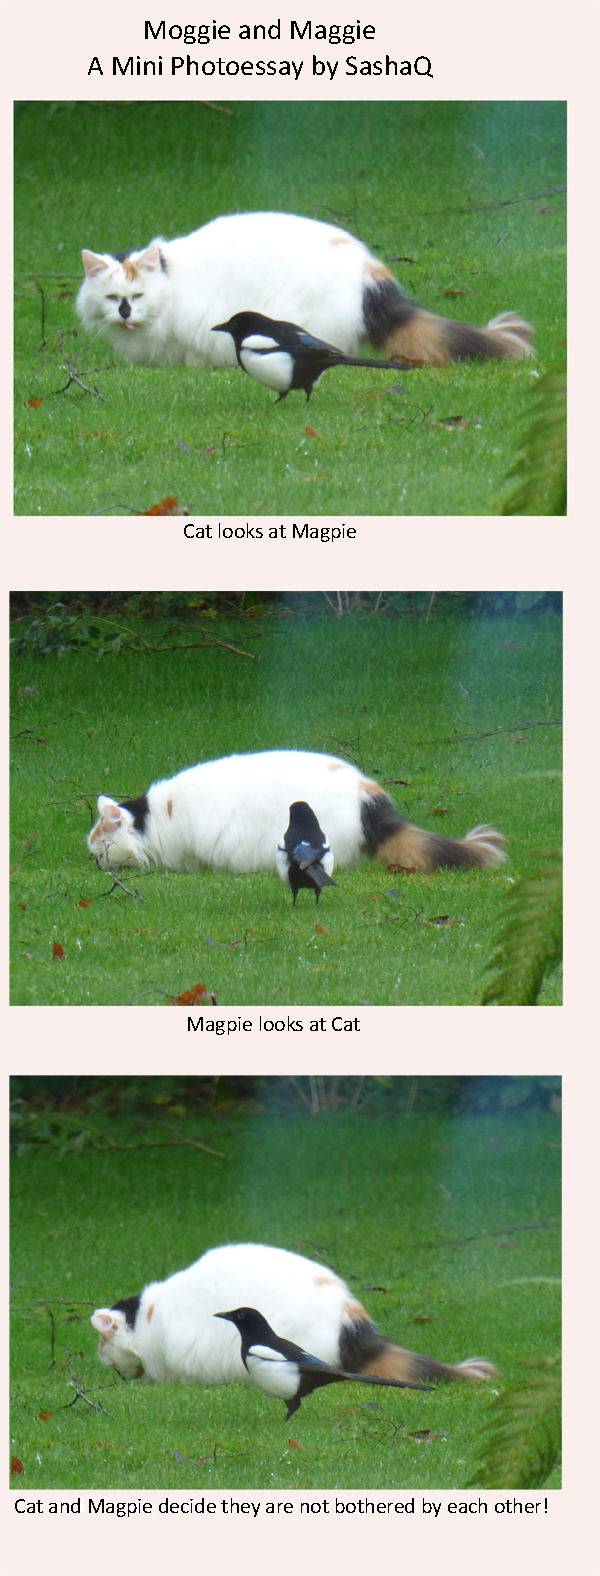 Cat looks at Magpie, Magpie looks at Cat - Cat and Magpie decide they are not bothered by each other!